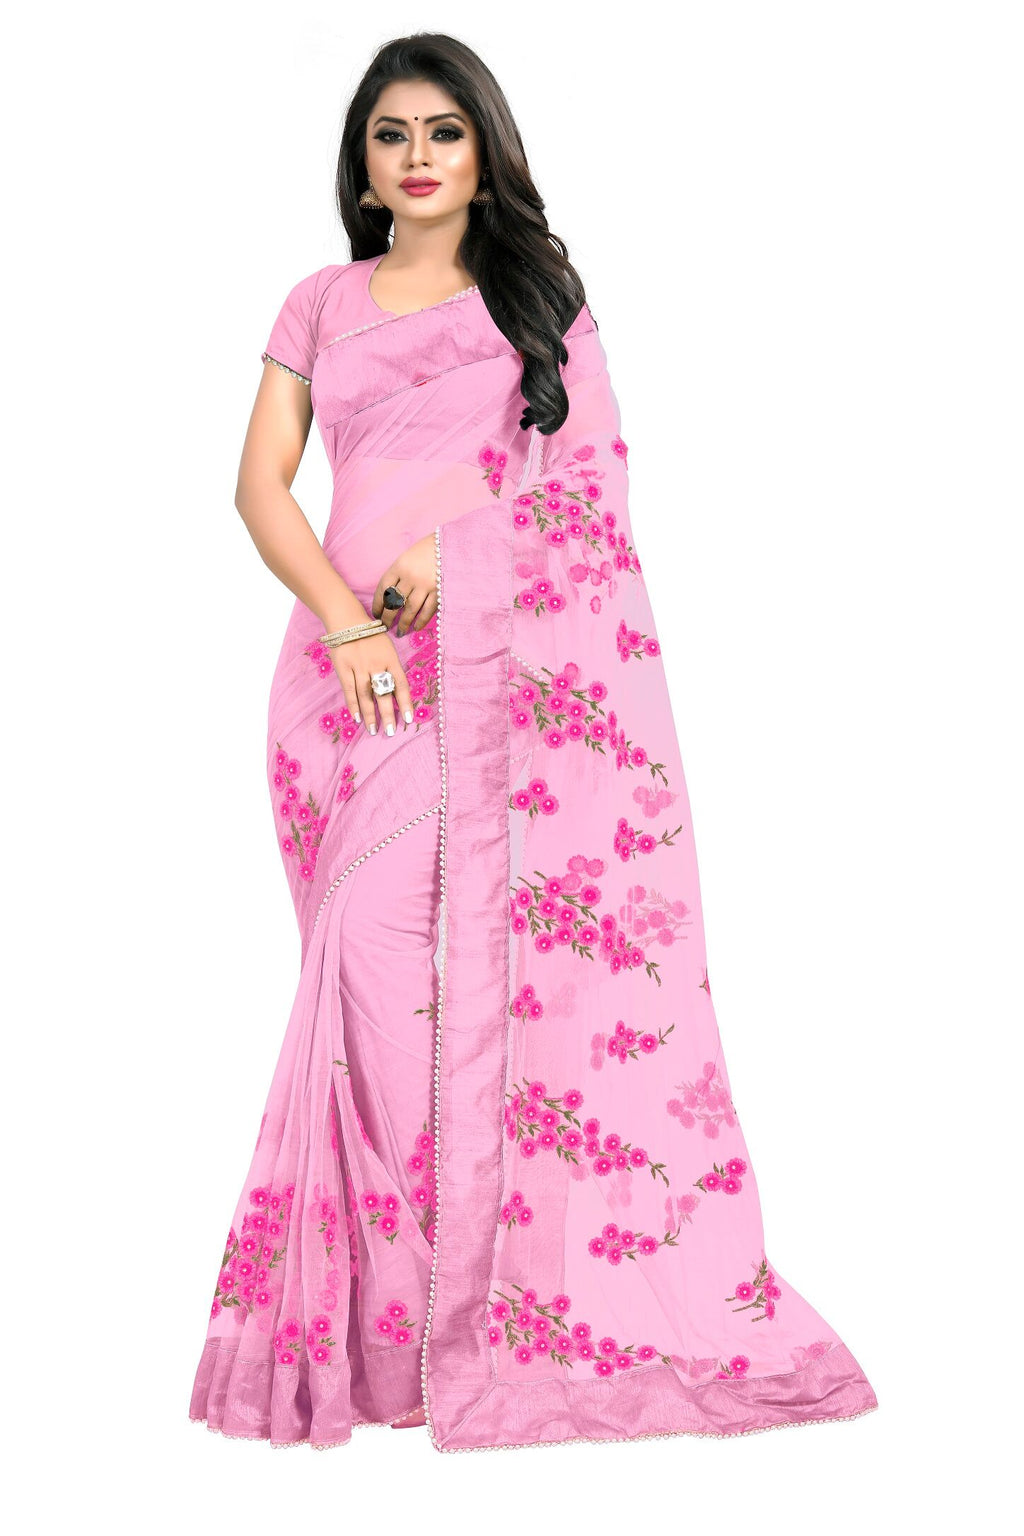 Pink Bandhej Designer Saree With Blouse